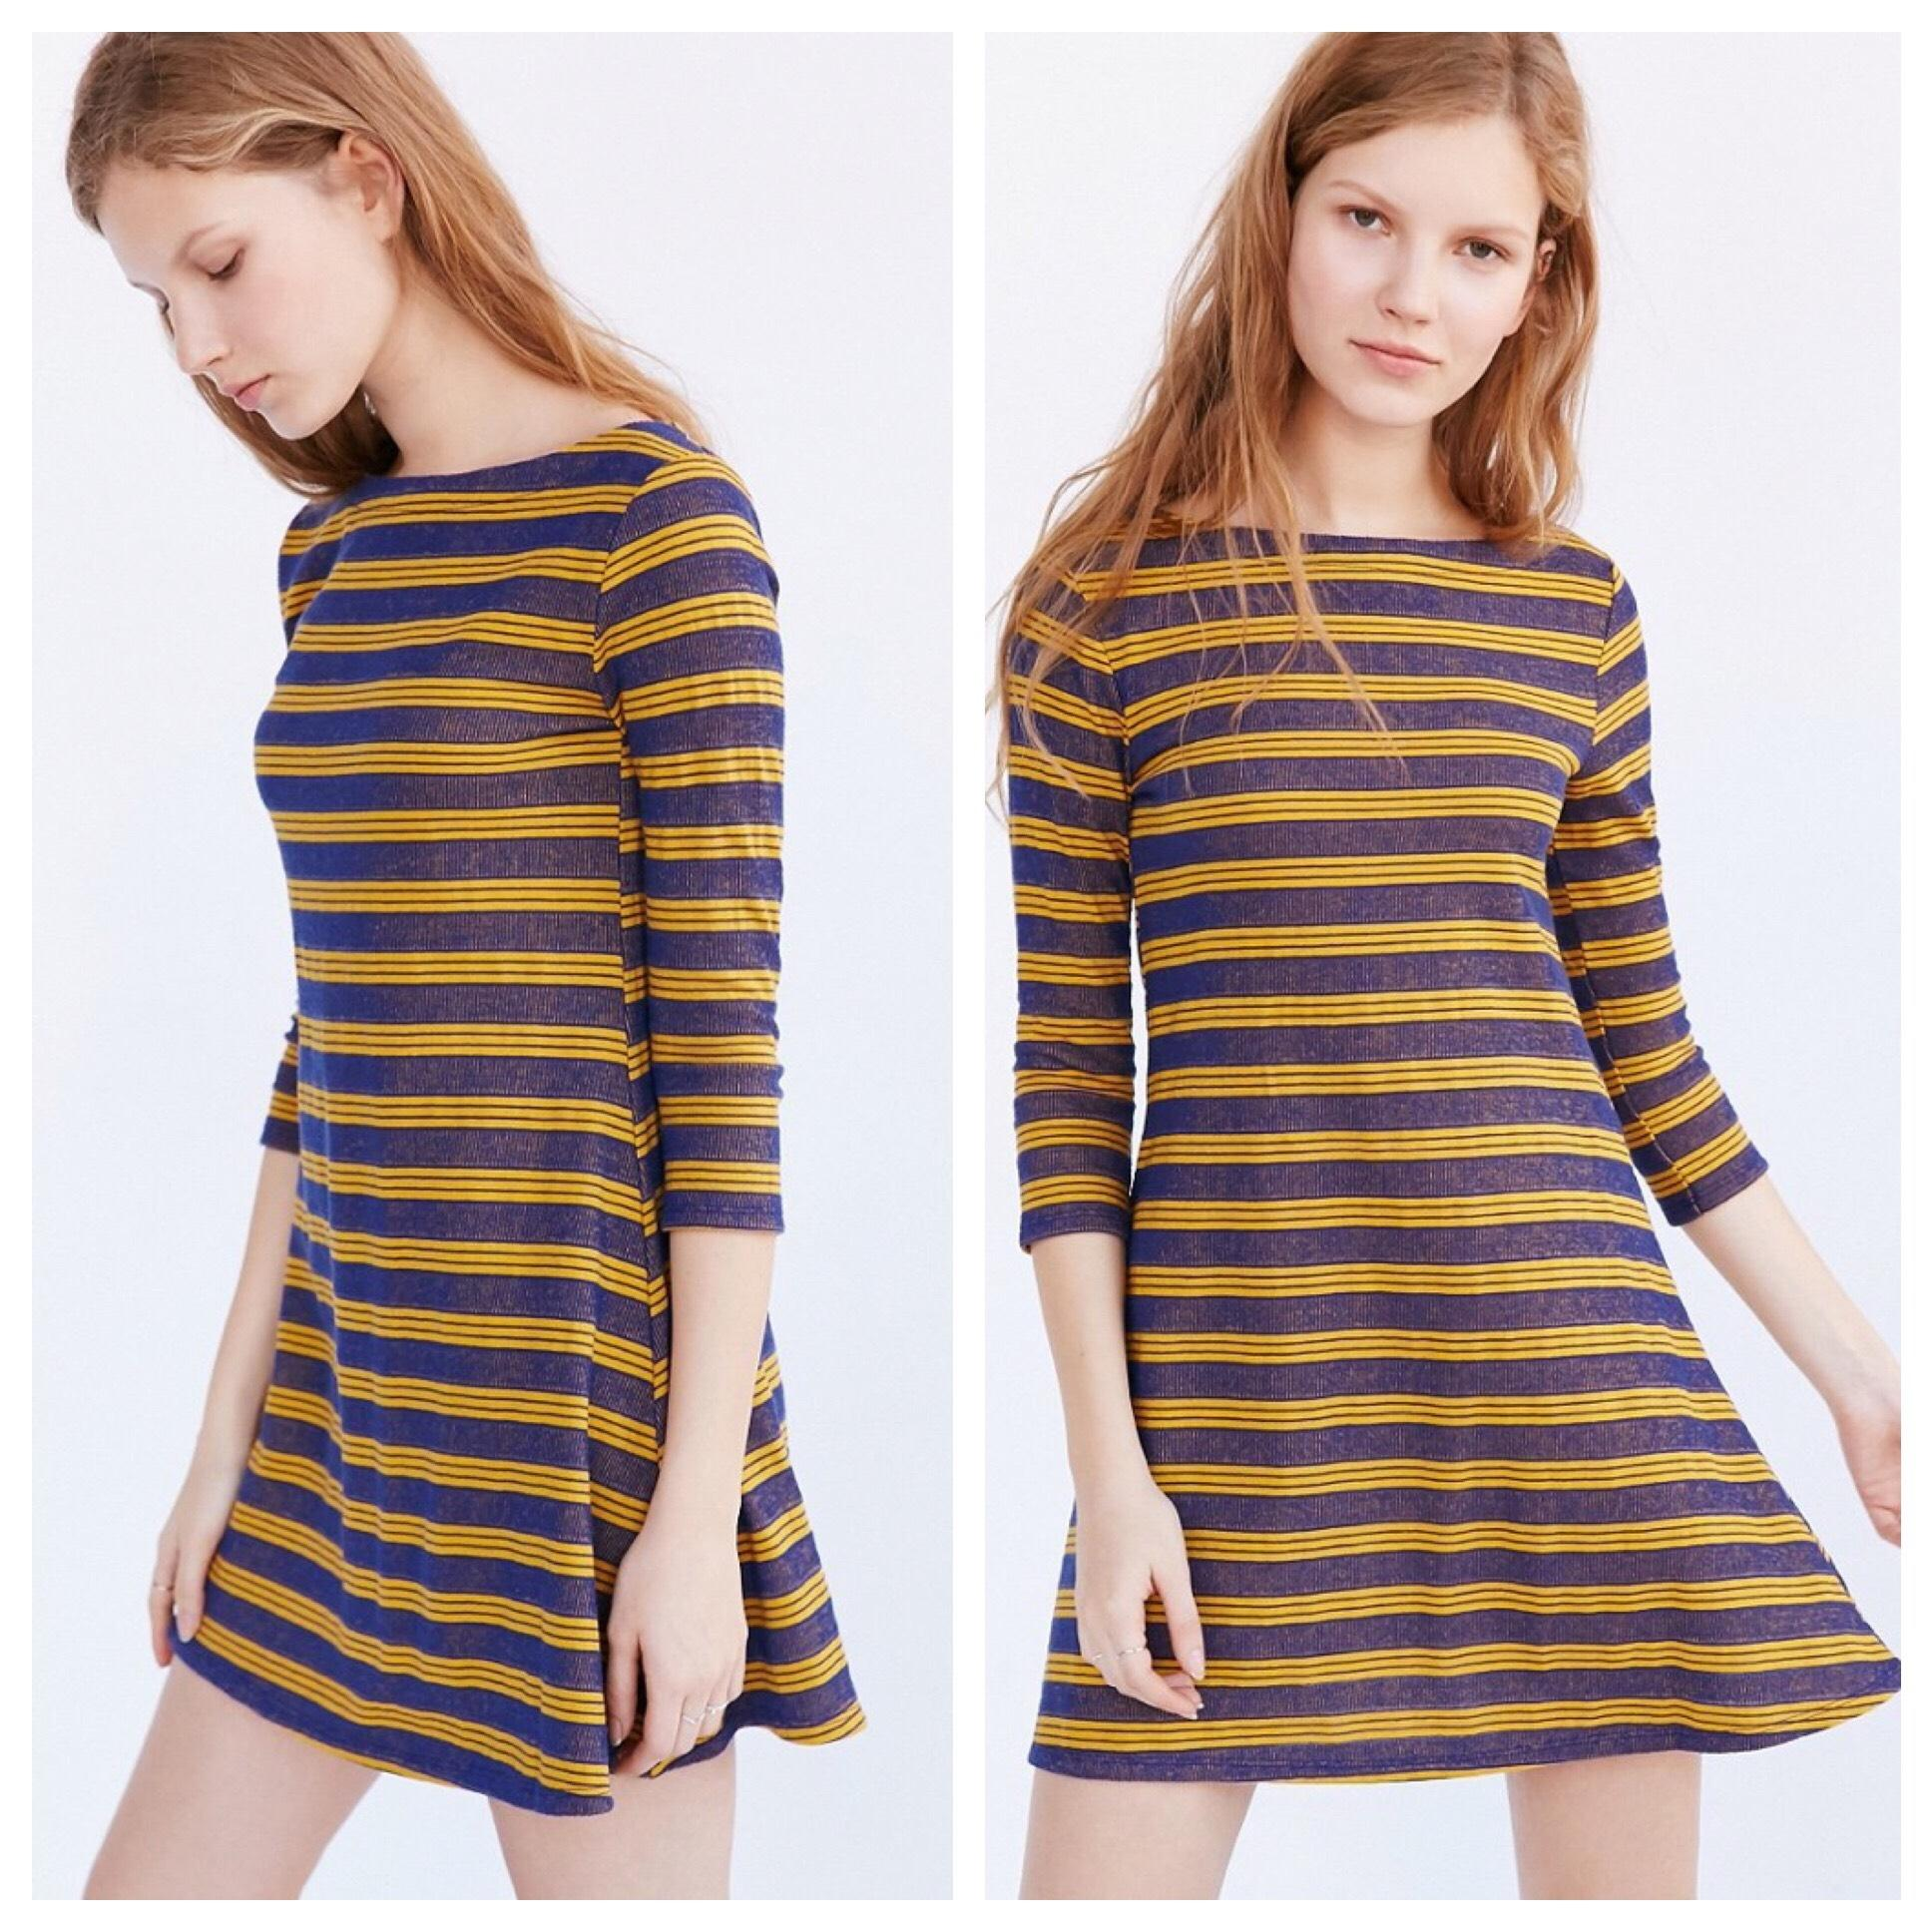 Urban Outfitters Blue And Yellow Dress - 74 Retail